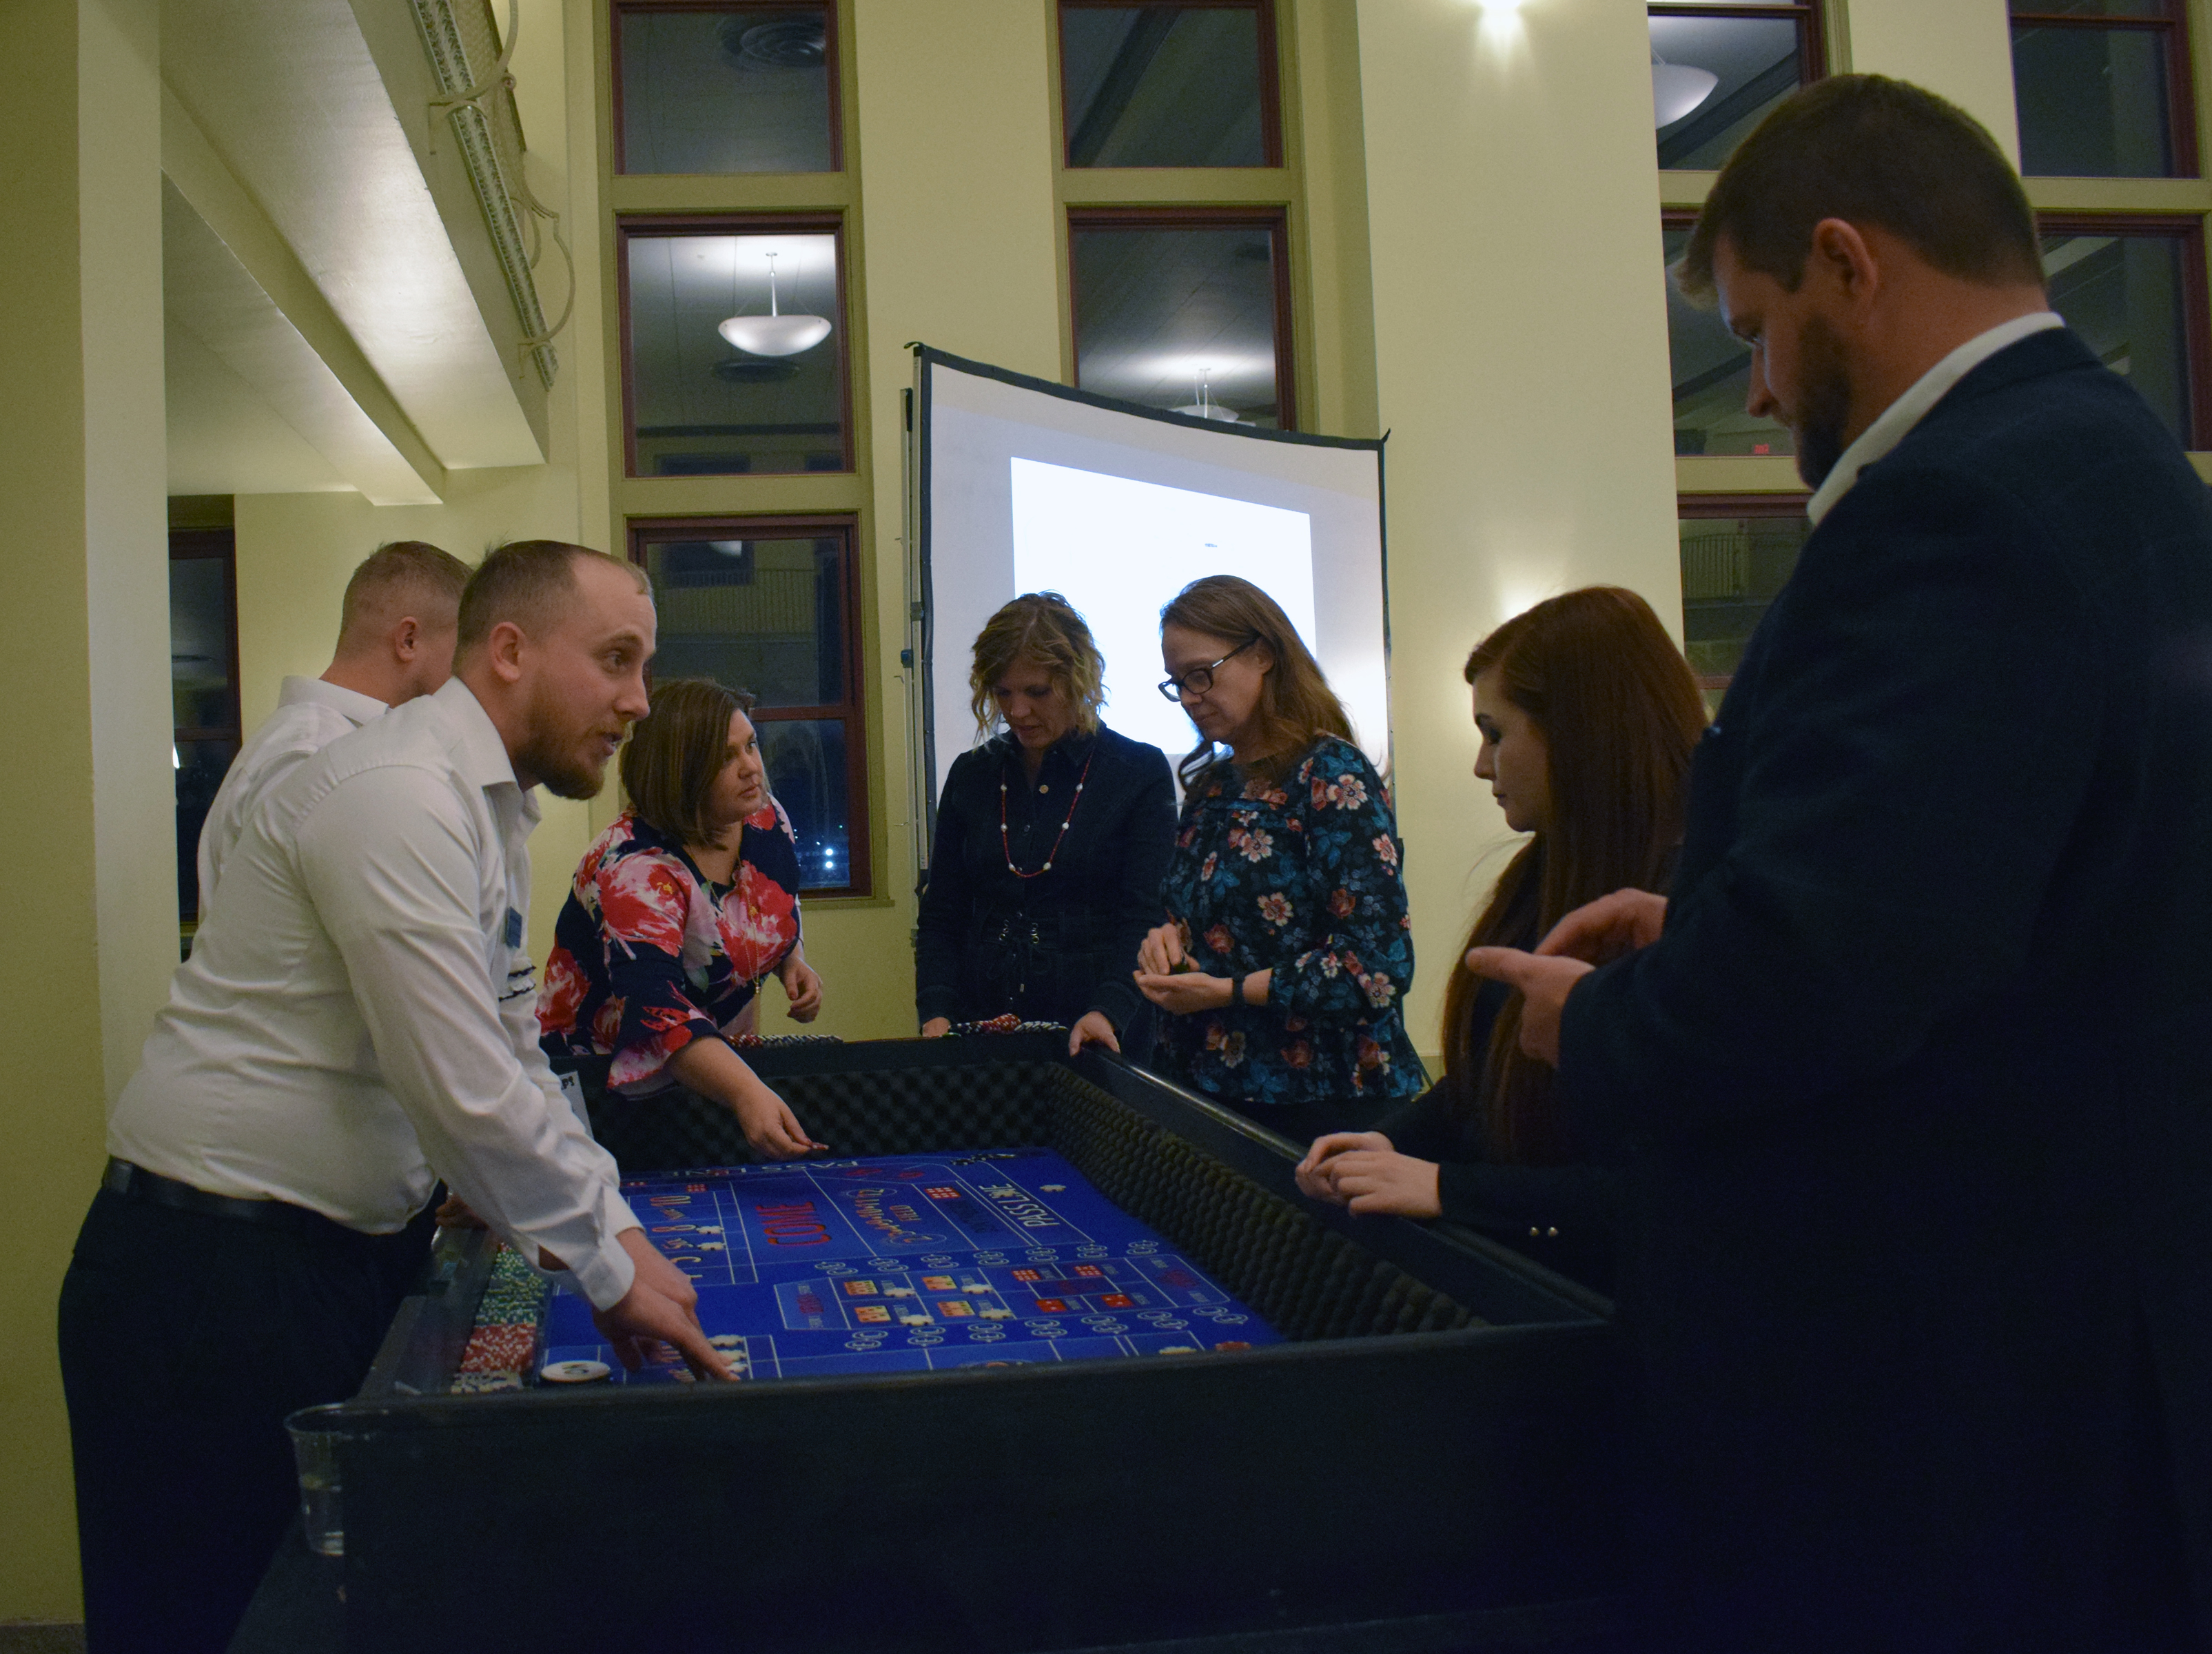 People enjoy a game of craps at the Casino Night at the Omaha Law League Casino Night at the Livestock Exchange Building on March 6, 2020. (Photo by Elizabeth A. Elliott)